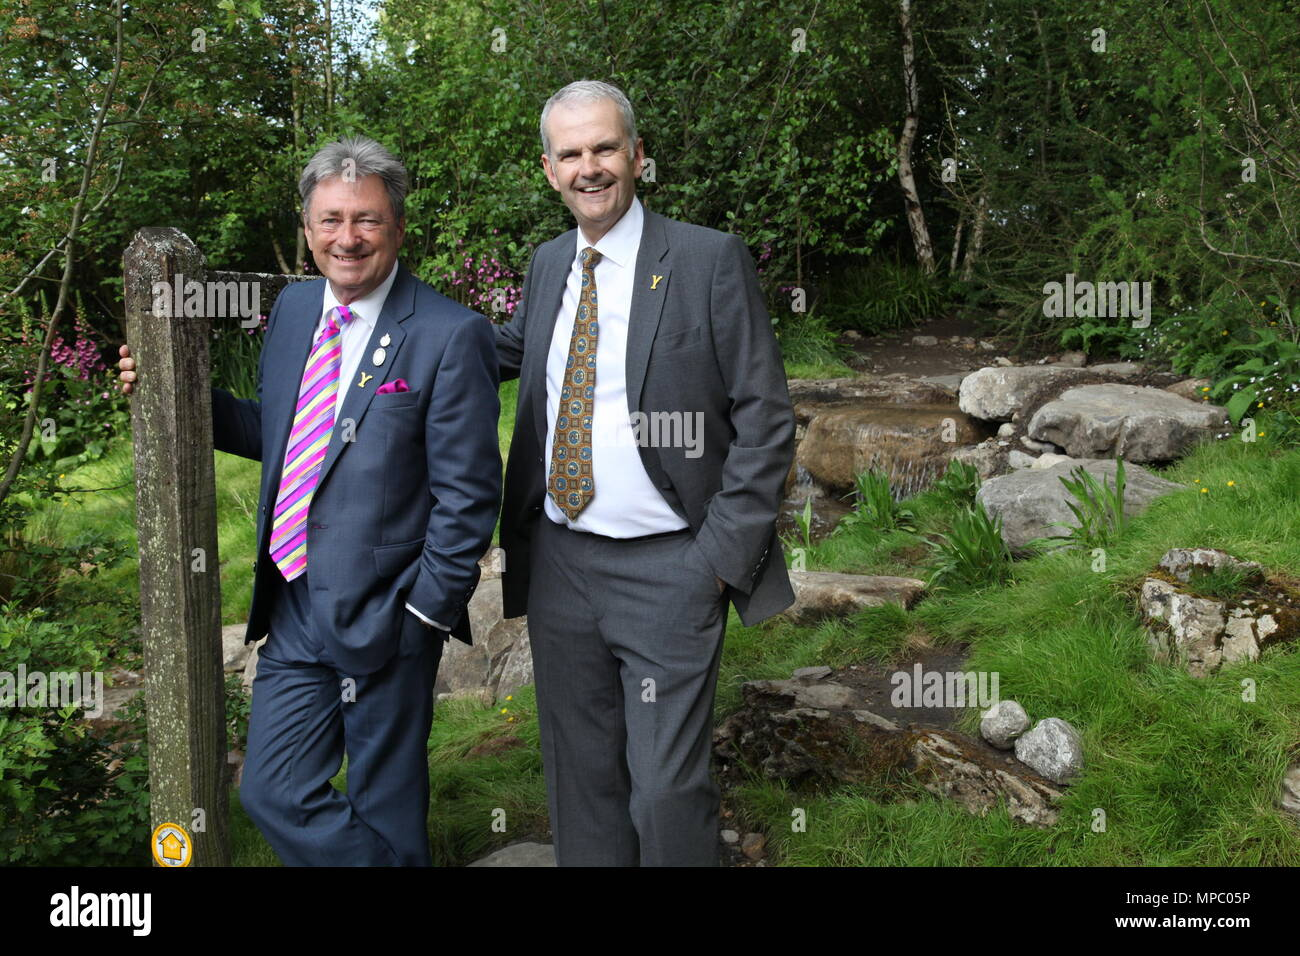 Chelsea, London, UK. 21st May, 2018. Sir Alan Titchmarsh with David Hartley Managing Director of Wensleydale Creamery on the Welcome to Yorkshire garden at Chelsea Flower Show 2018, designed by Mark Gregory for Landformconsultants.co.uk Credit: Jenny Lilly/Alamy Live News - Stock Image